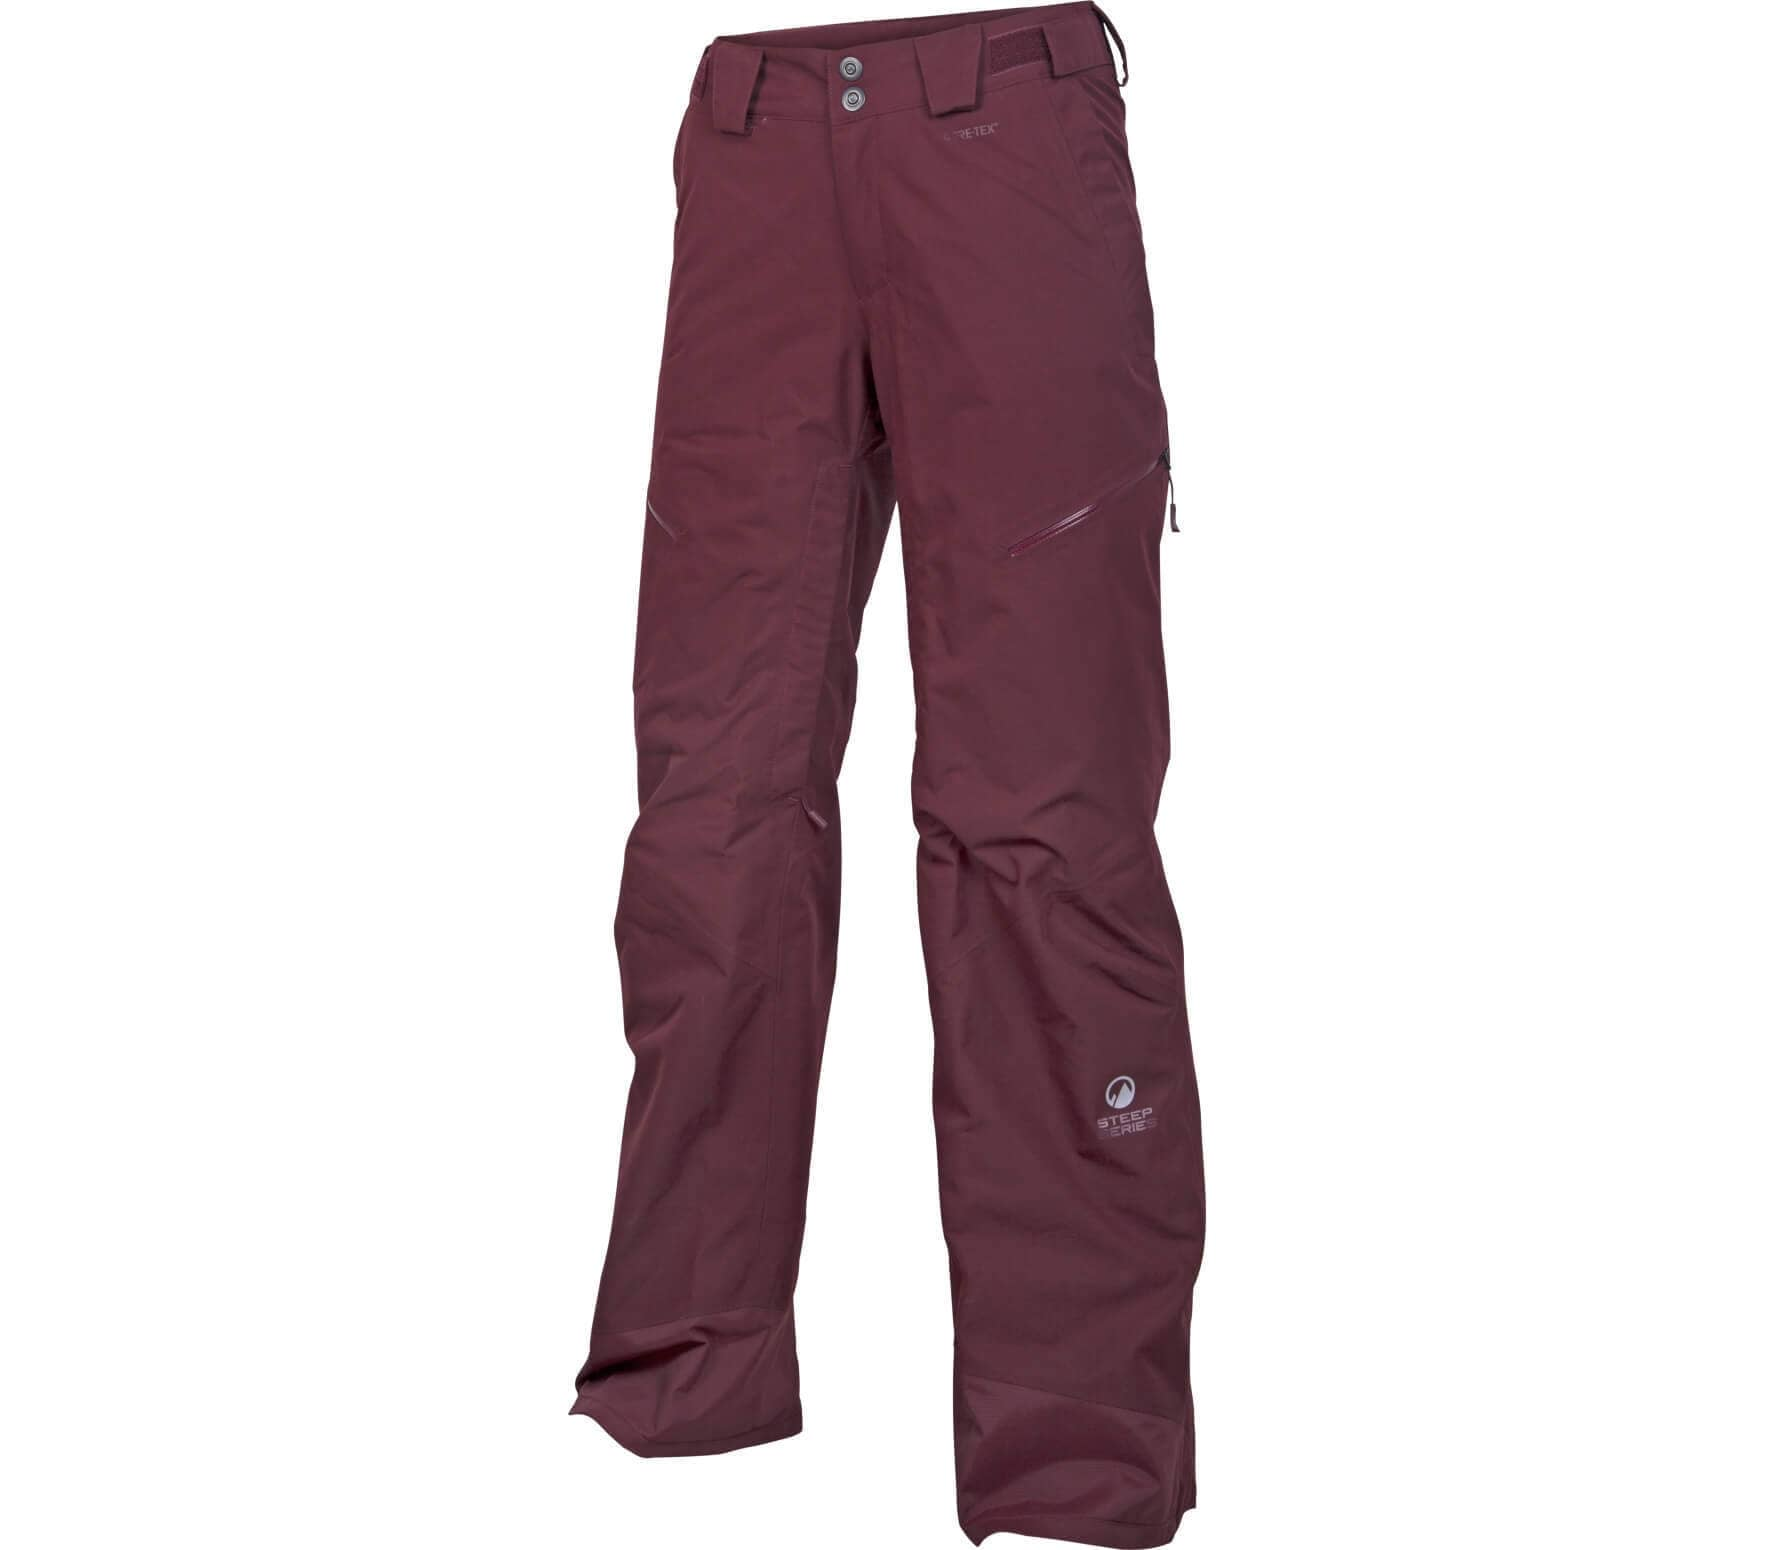 Ski Femmes Gore Face Nfz North De Insulated Pantalon Tex Pour The wv8Oanqx6n